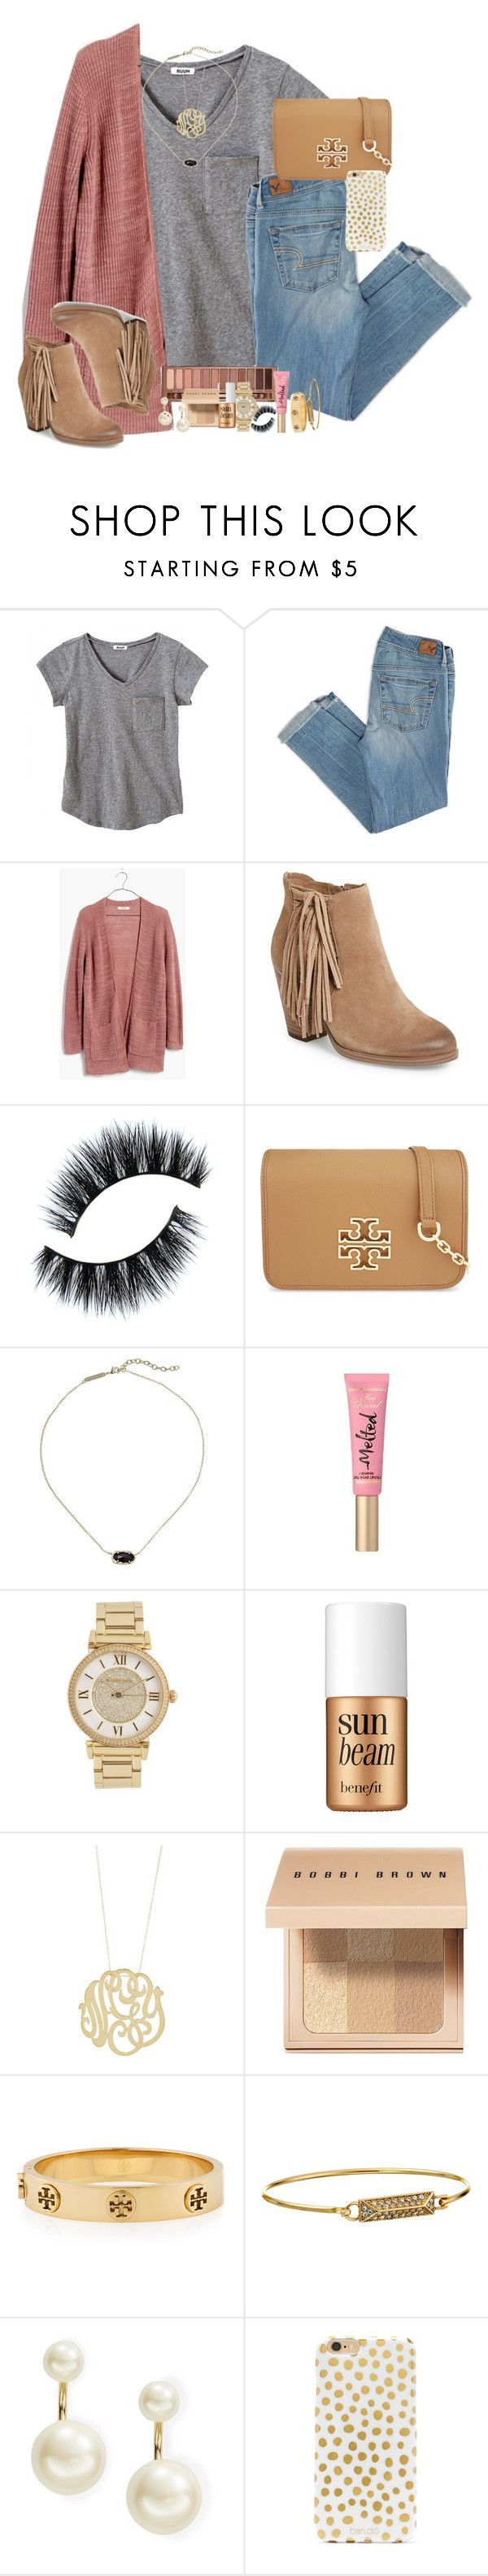 """""""yourrr holyyyyyy"""" by smbprep ❤ liked on Polyvore featuring American Eagle Outfitters, Madewell, Vince Camuto, Tory Burch, Kendra Scott, Urban Decay, Too Faced Cosmetics, Michael Kors, Benefit and Ginette NY"""